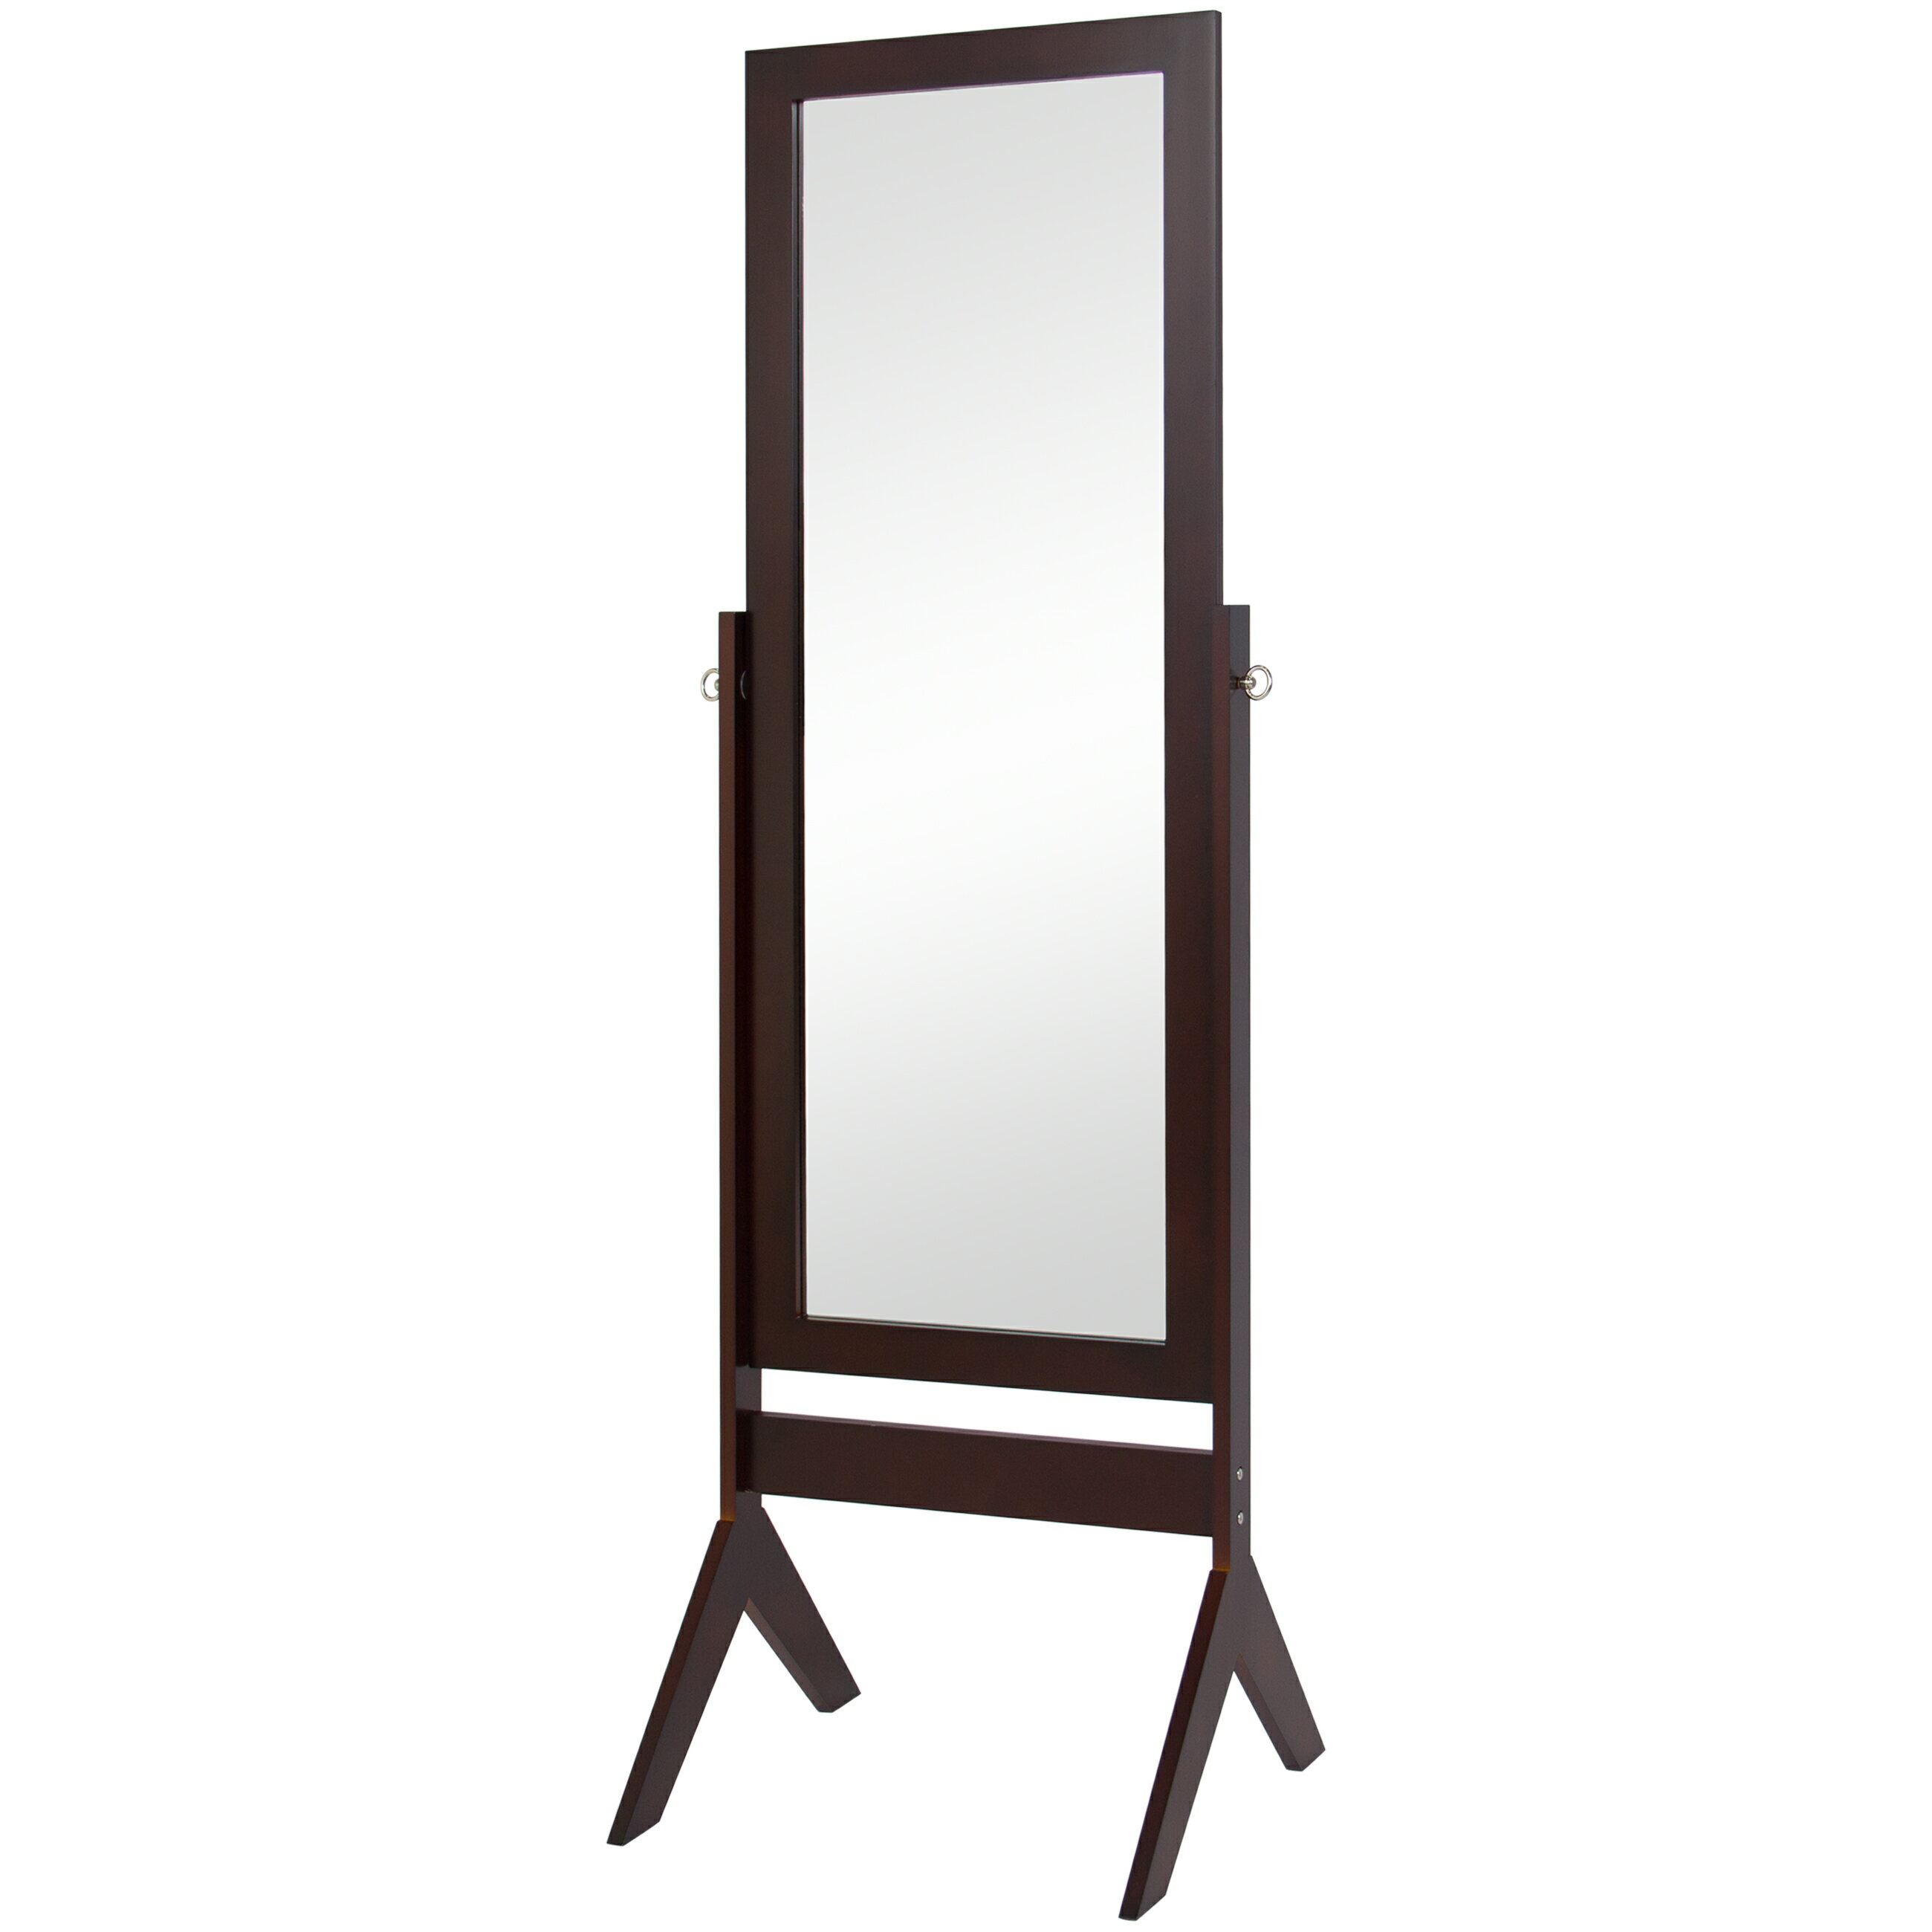 Best Choice Products Cheval Floor Mirror Bedroom Home Furniture- Espresso Brown 0